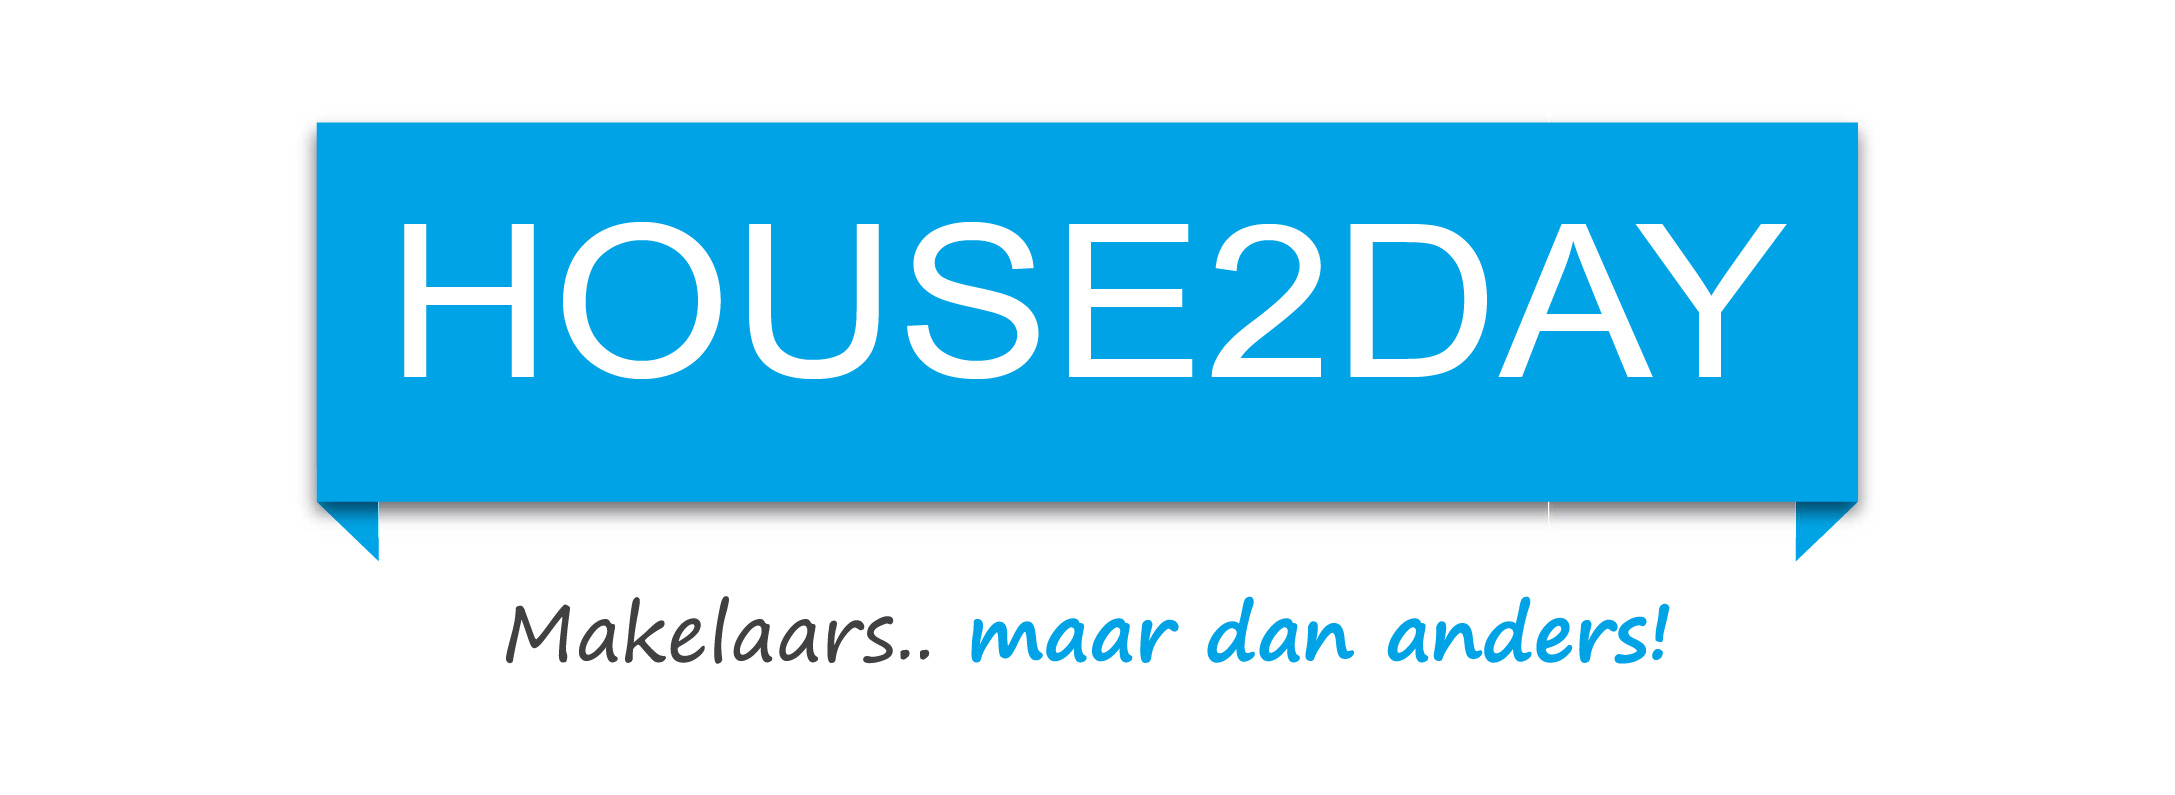 House2Day Makelaars